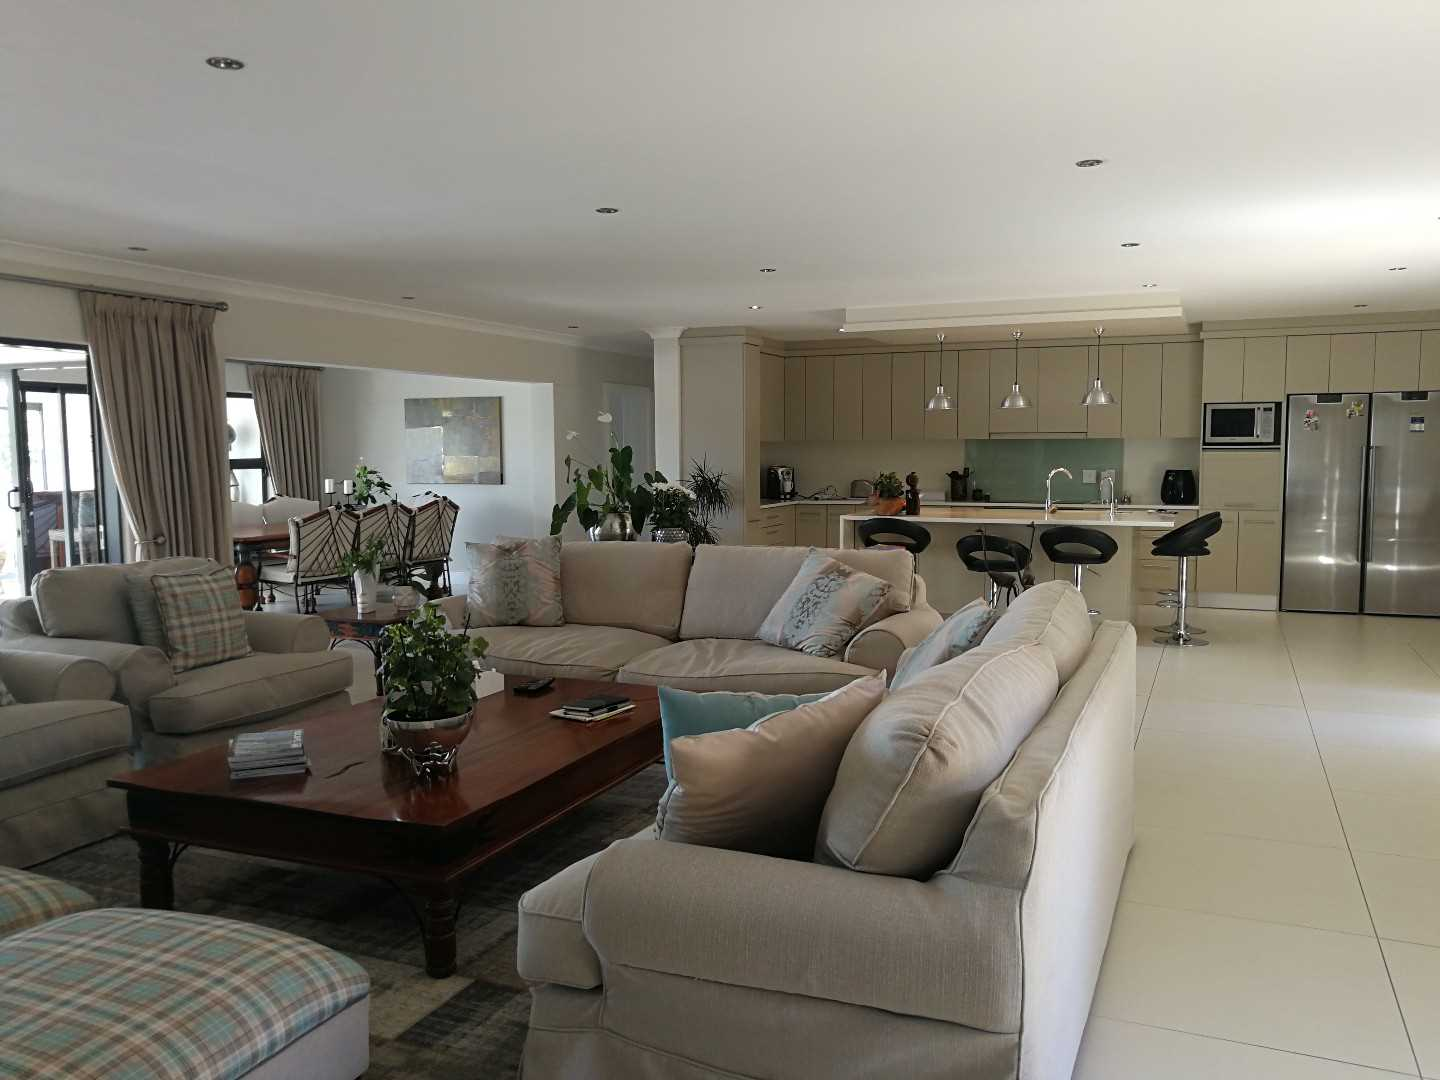 Formal  lounge and open plan living at its best!